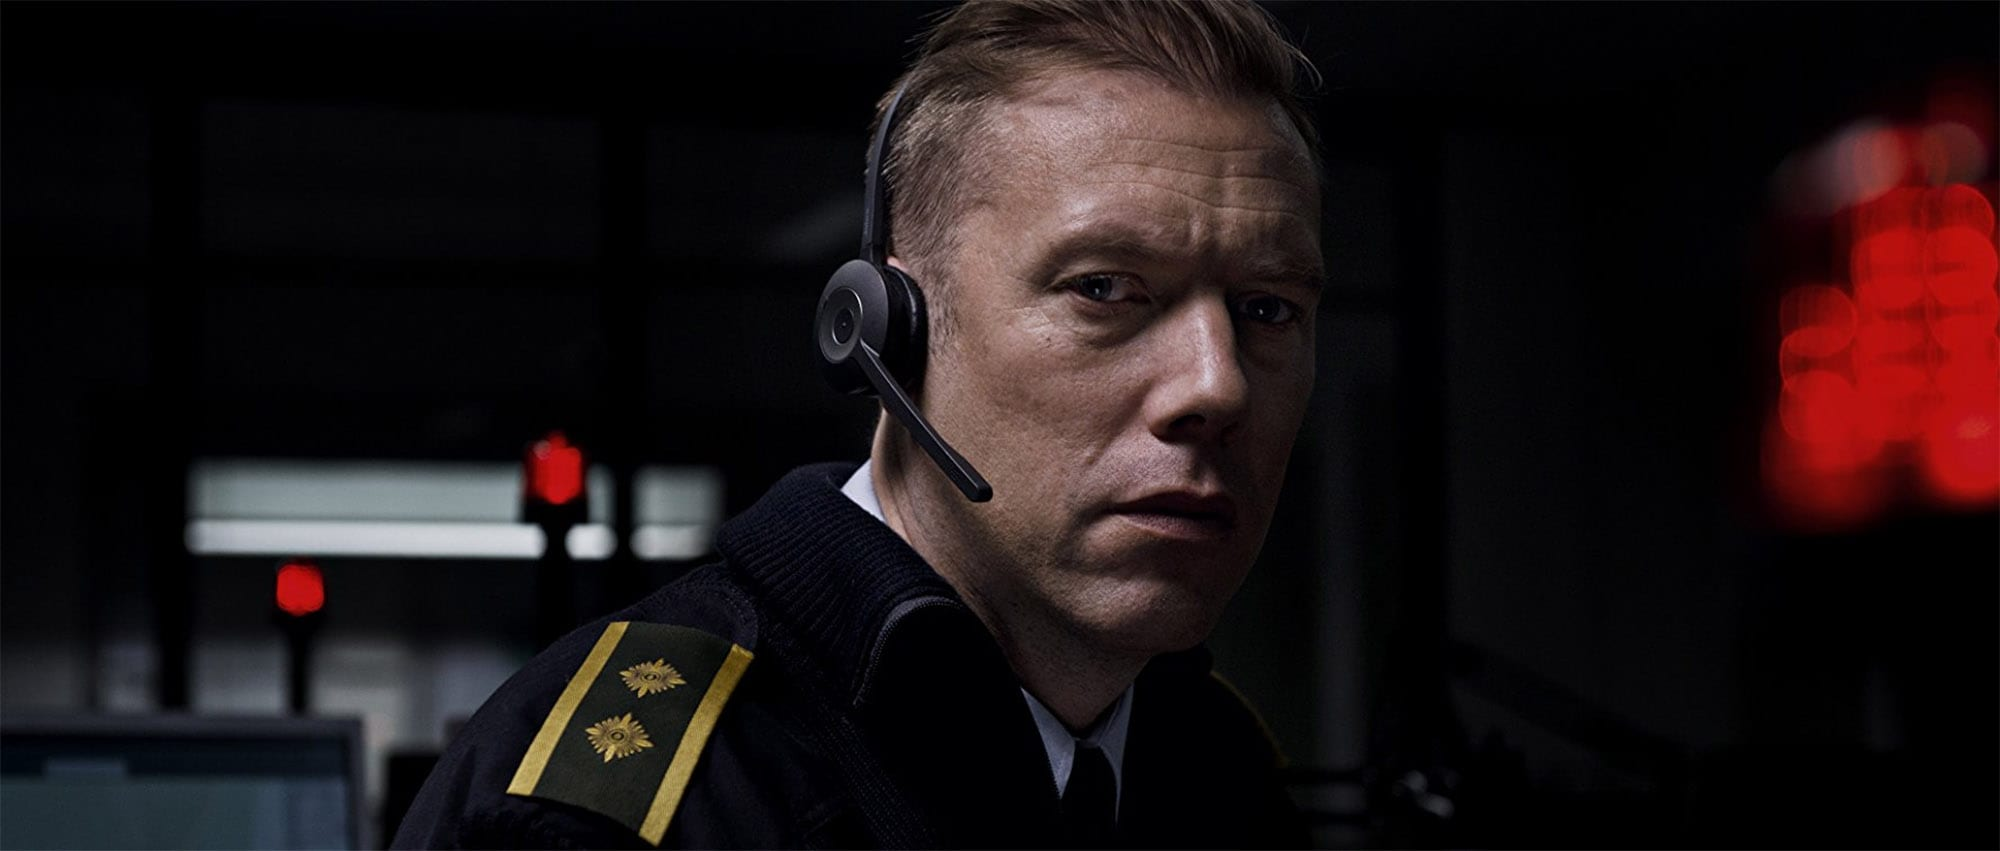 When a police officer is demoted, he expects a sleepy beat, until he answers a phone call from a kidnapped woman who then disconnects in 'The Guilty'.